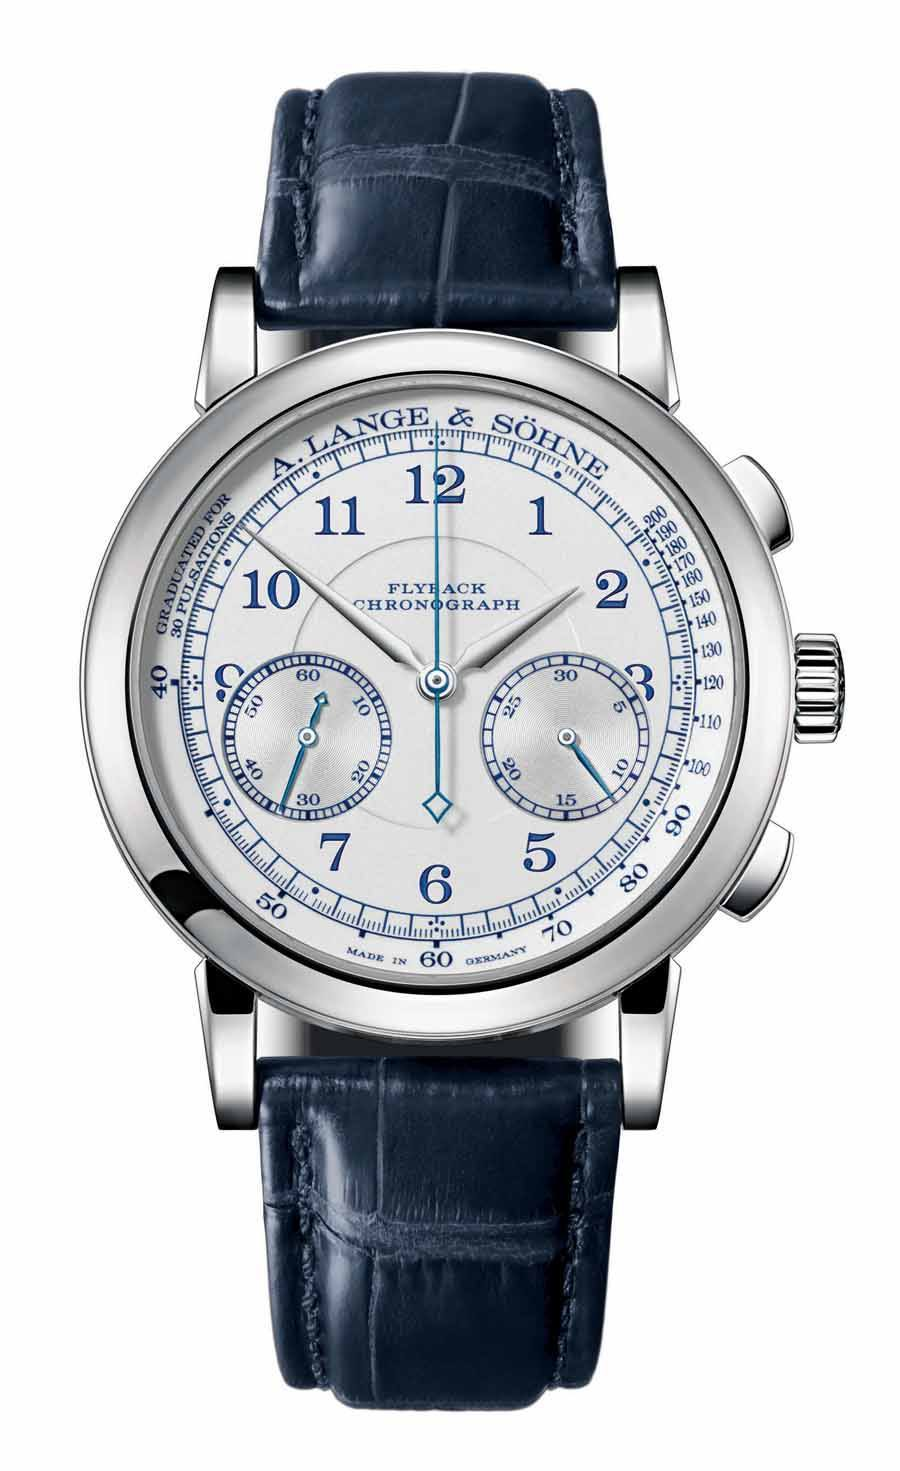 Die Sonderedition der 1815 Chronograph